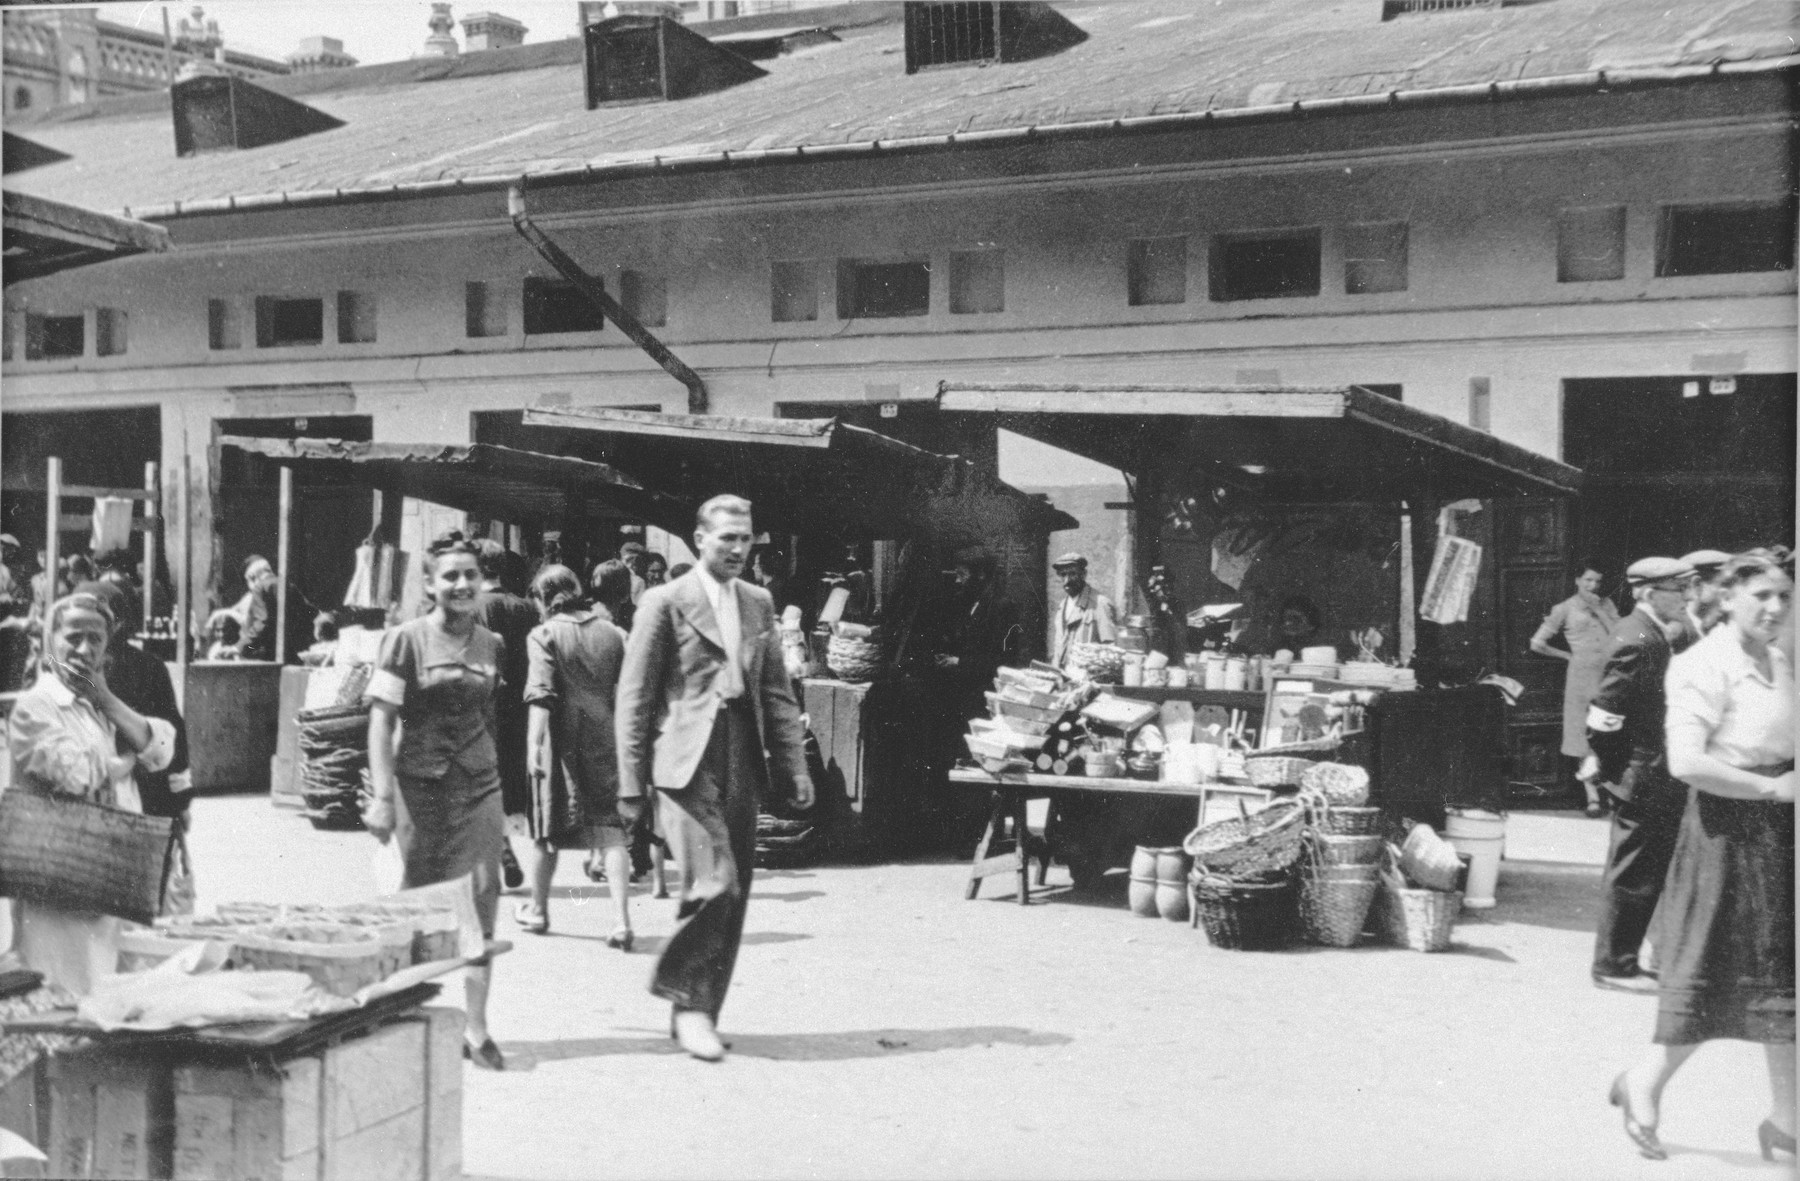 Jews and Poles shop in the Kercelak second-hand market between the Krochmalna and Mirowski squares in Warsaw.